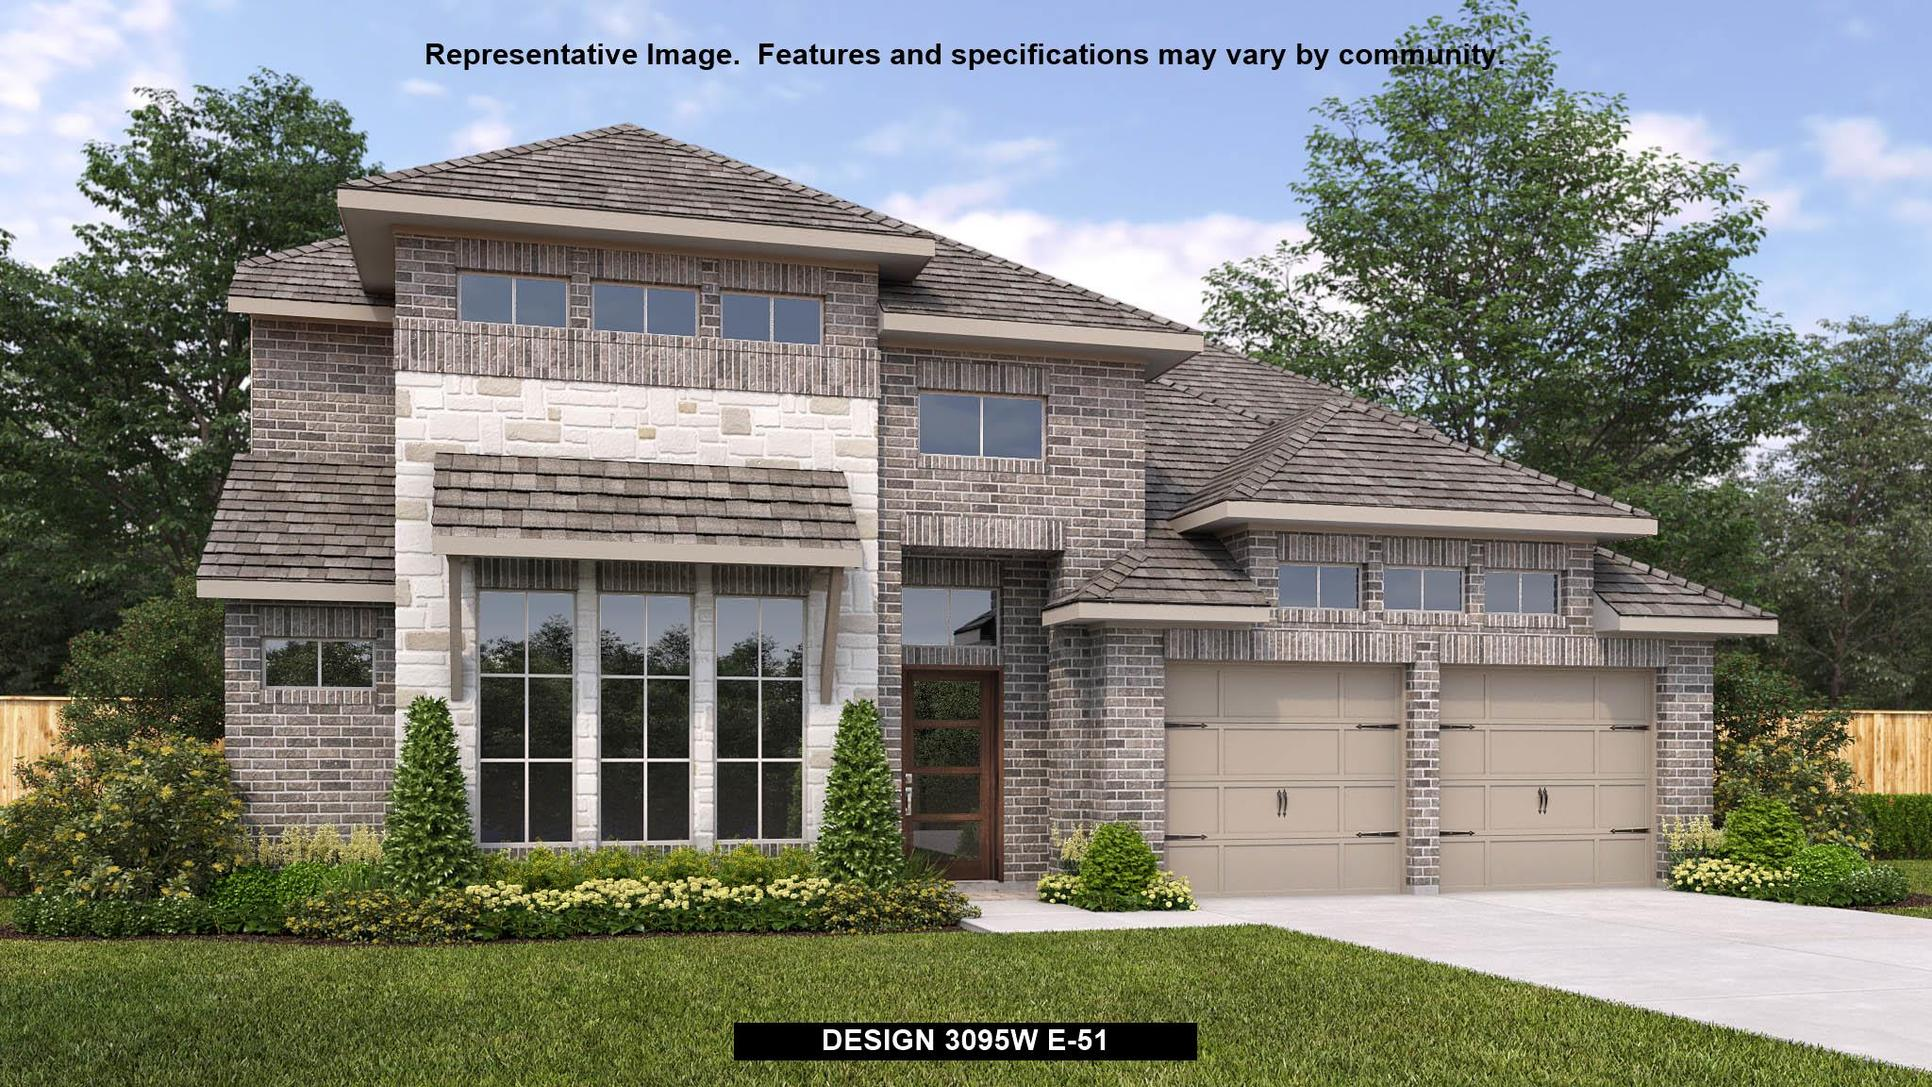 Plan 3095W:Representative photo.  Features and specifications may vary by community.